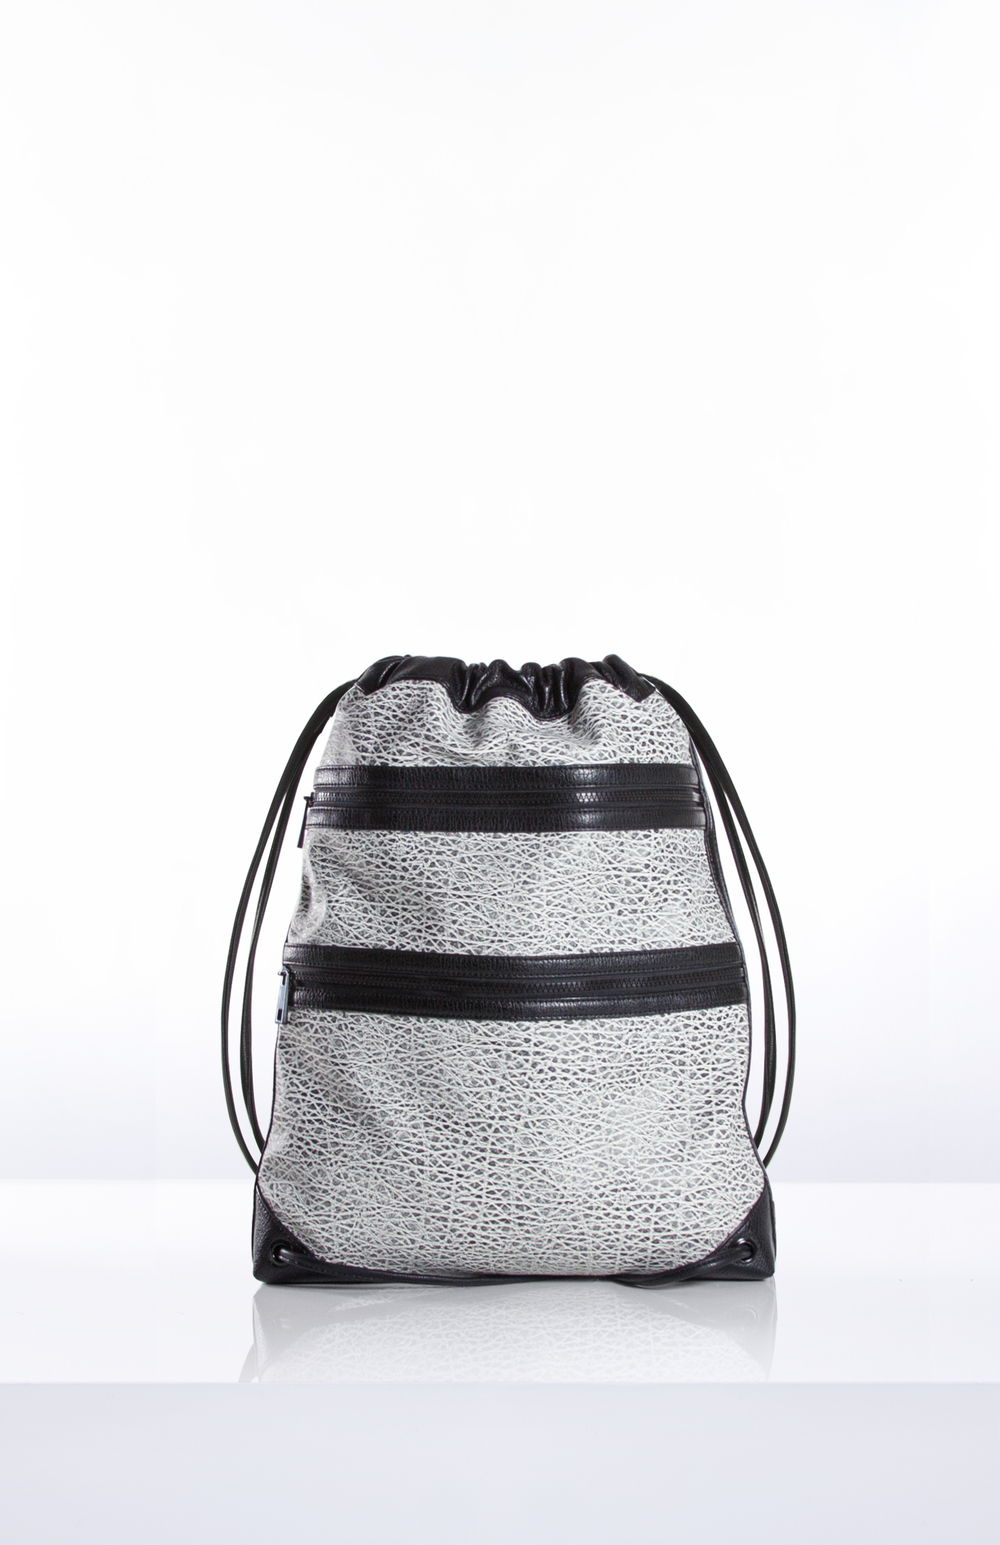 Verge Creative Group's Summer 2017 Odessa Drawstring Gym Bag made with Heavy Marbled PU and Nylon Mesh Blocking.